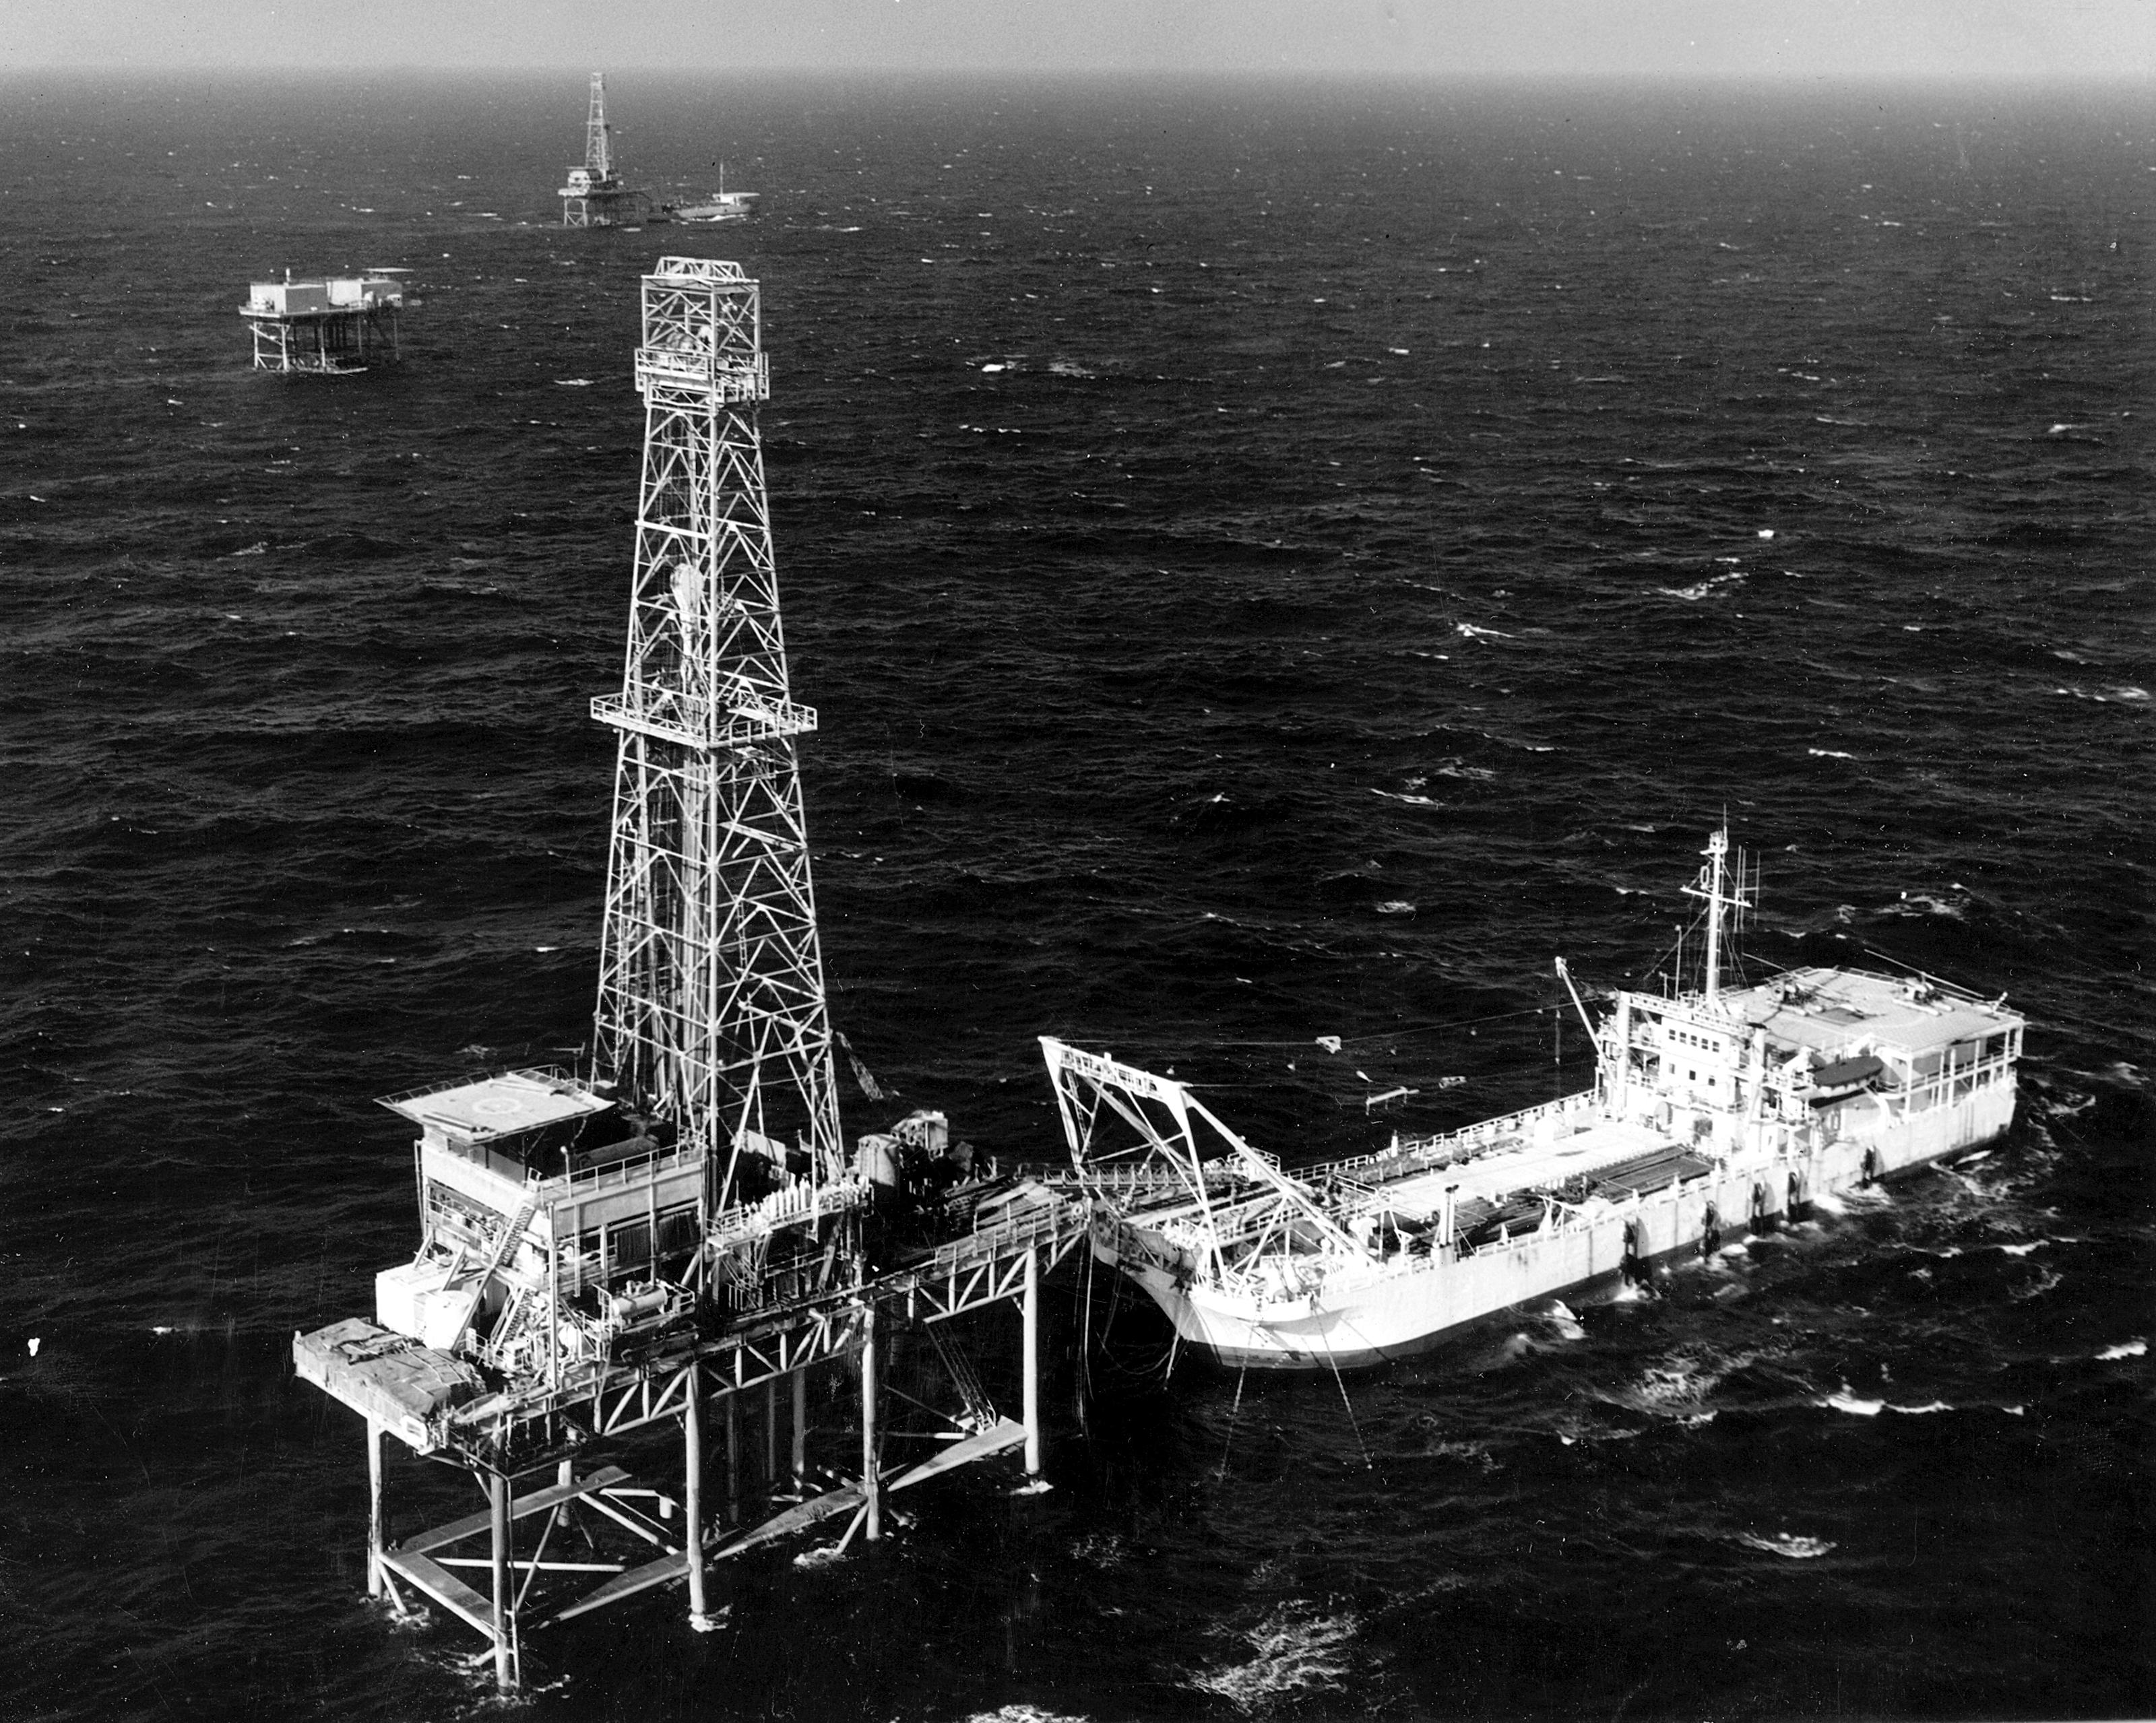 File:Tender and offshore oil rig platform, Louisiana.jpg - Wikimedia Commons